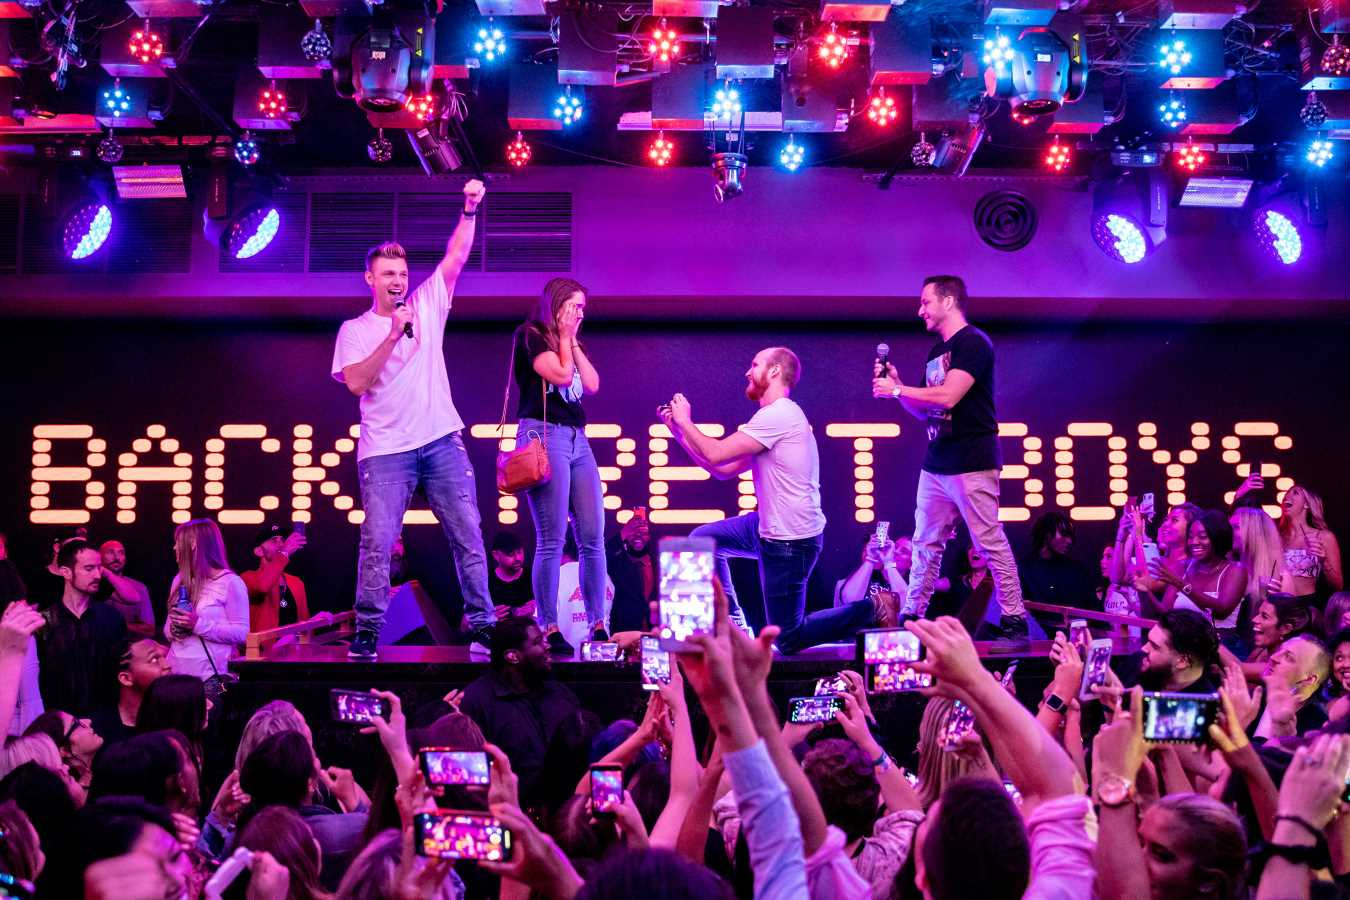 The Backstreet Boys' Nick Carter and Howie Dorough Help a Fan Propose on Top of a DJ Booth